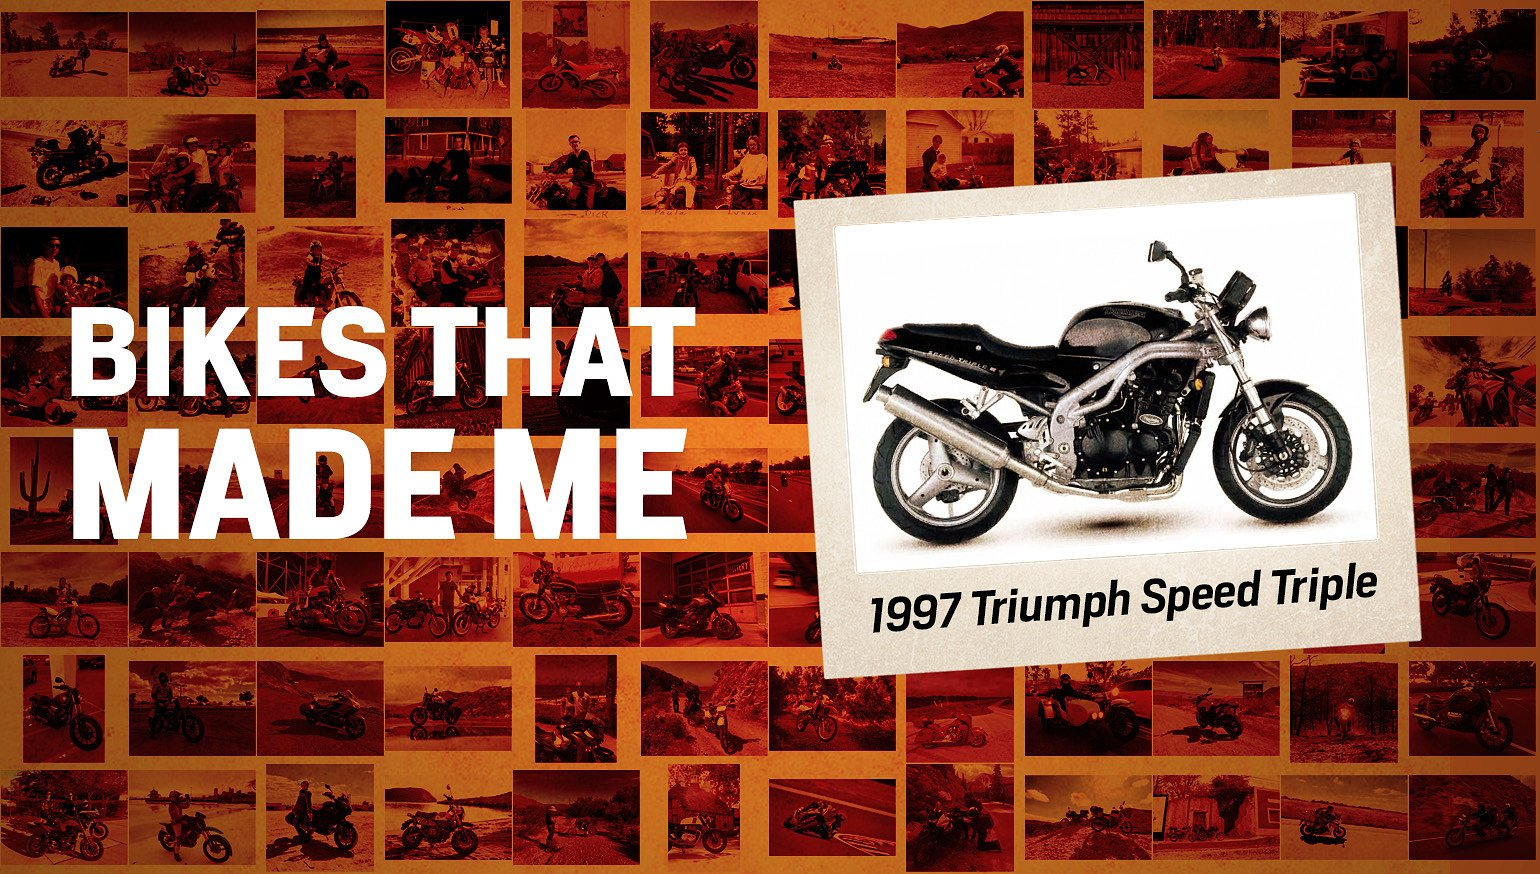 Bikes That Made Me A Triumph Speed Triple Shifted My Motorcycling Into A Higher Gear Revzilla